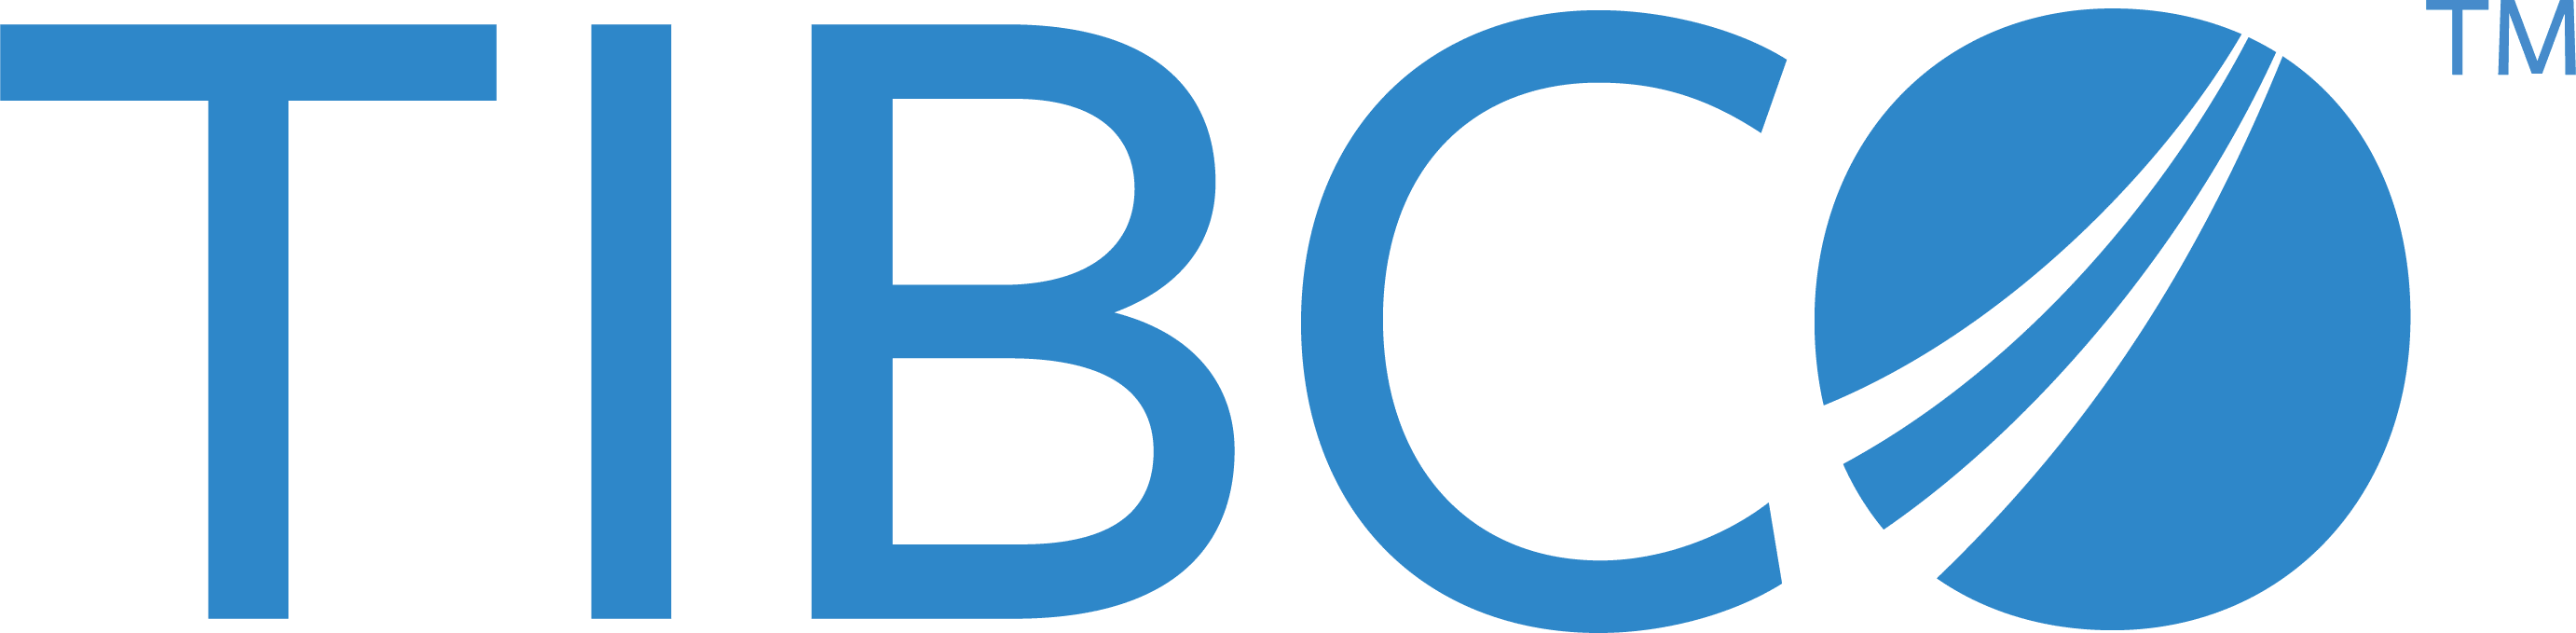 TIBCO Business Intelligence logo